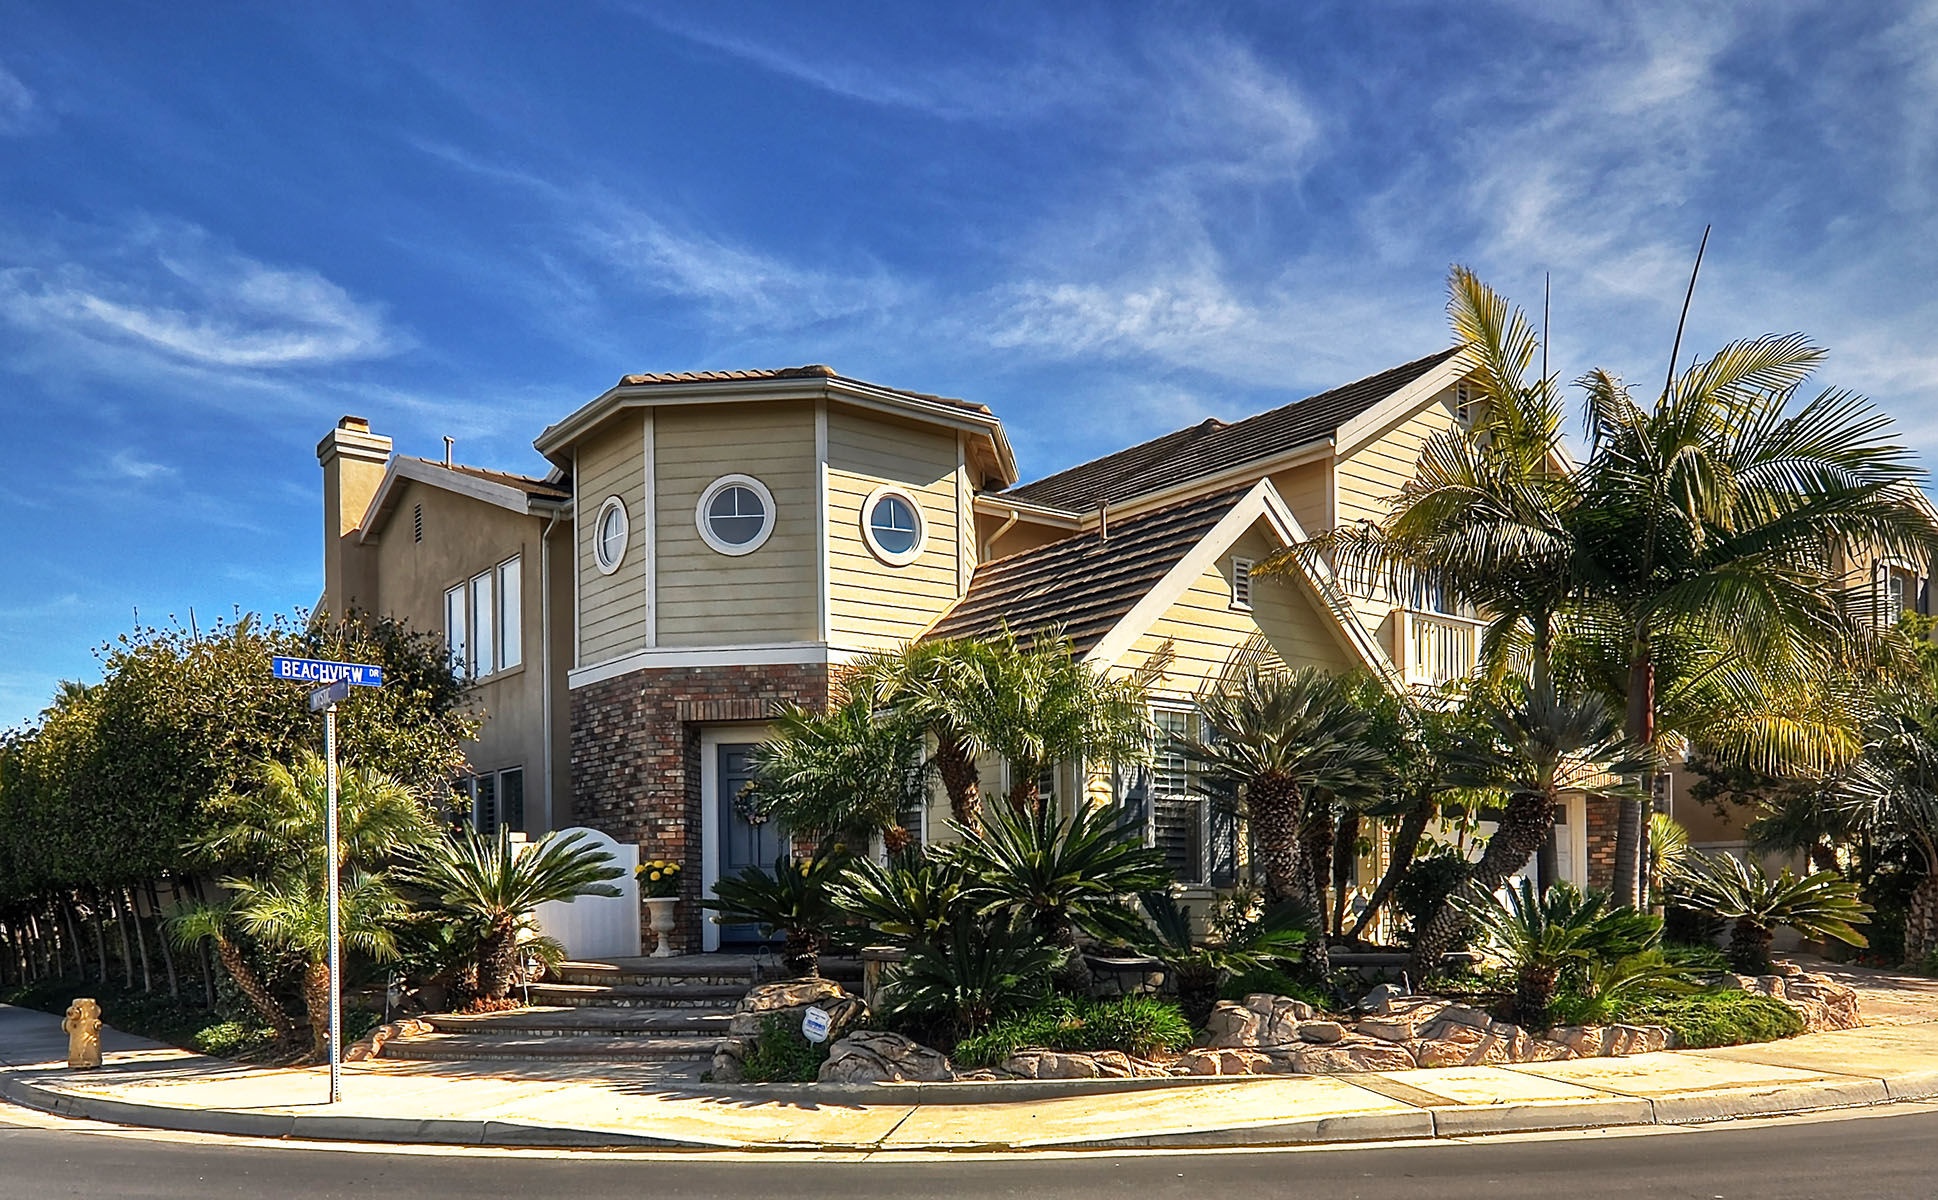 Single Family Home for Sale at 6331 Beachview Drive Huntington Beach, California, 92648 United States